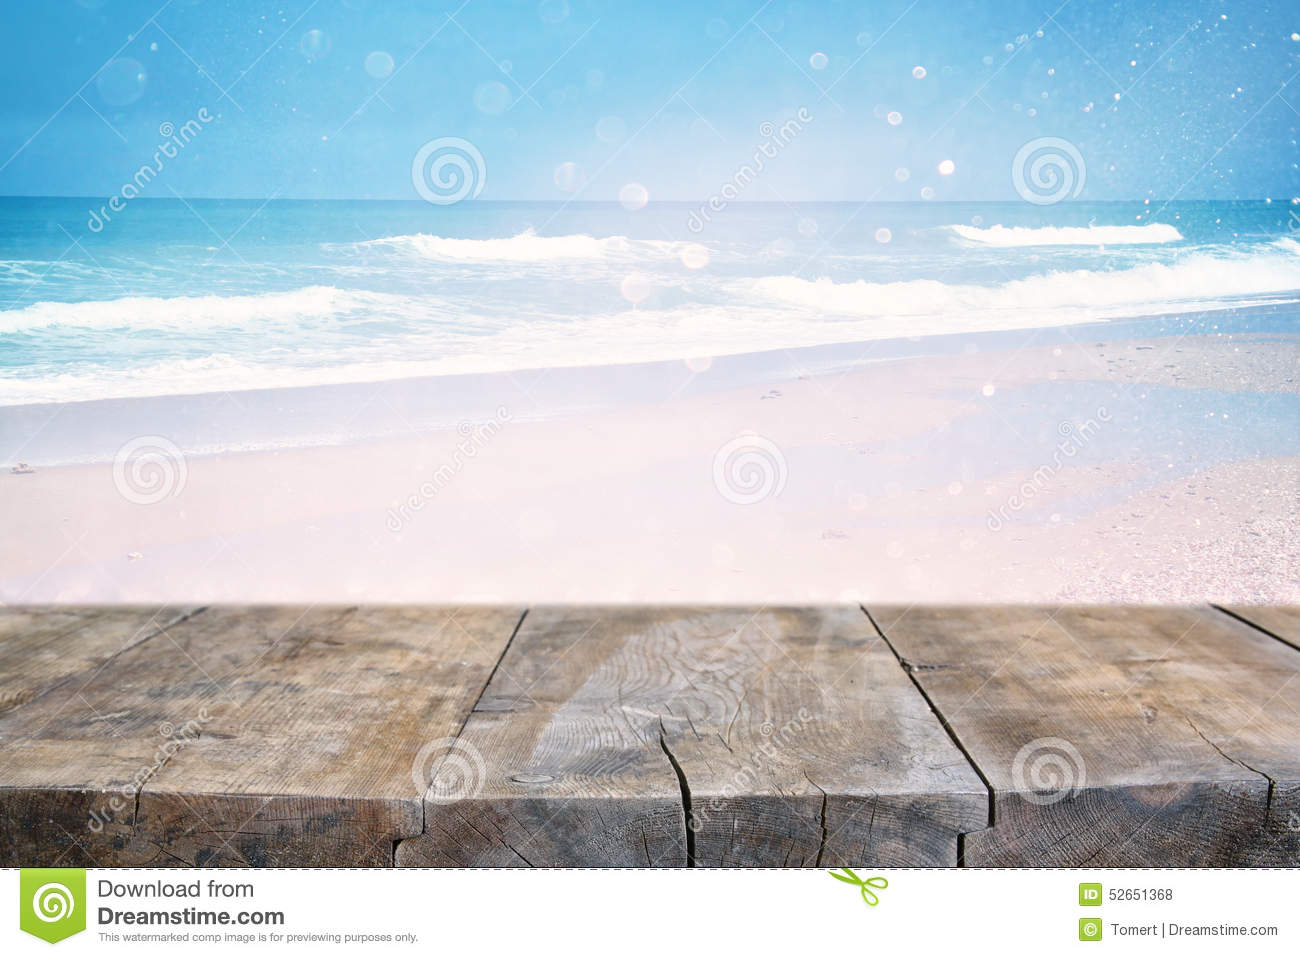 Wood deck in front of abstract sea landscape. ready for product display. textured image